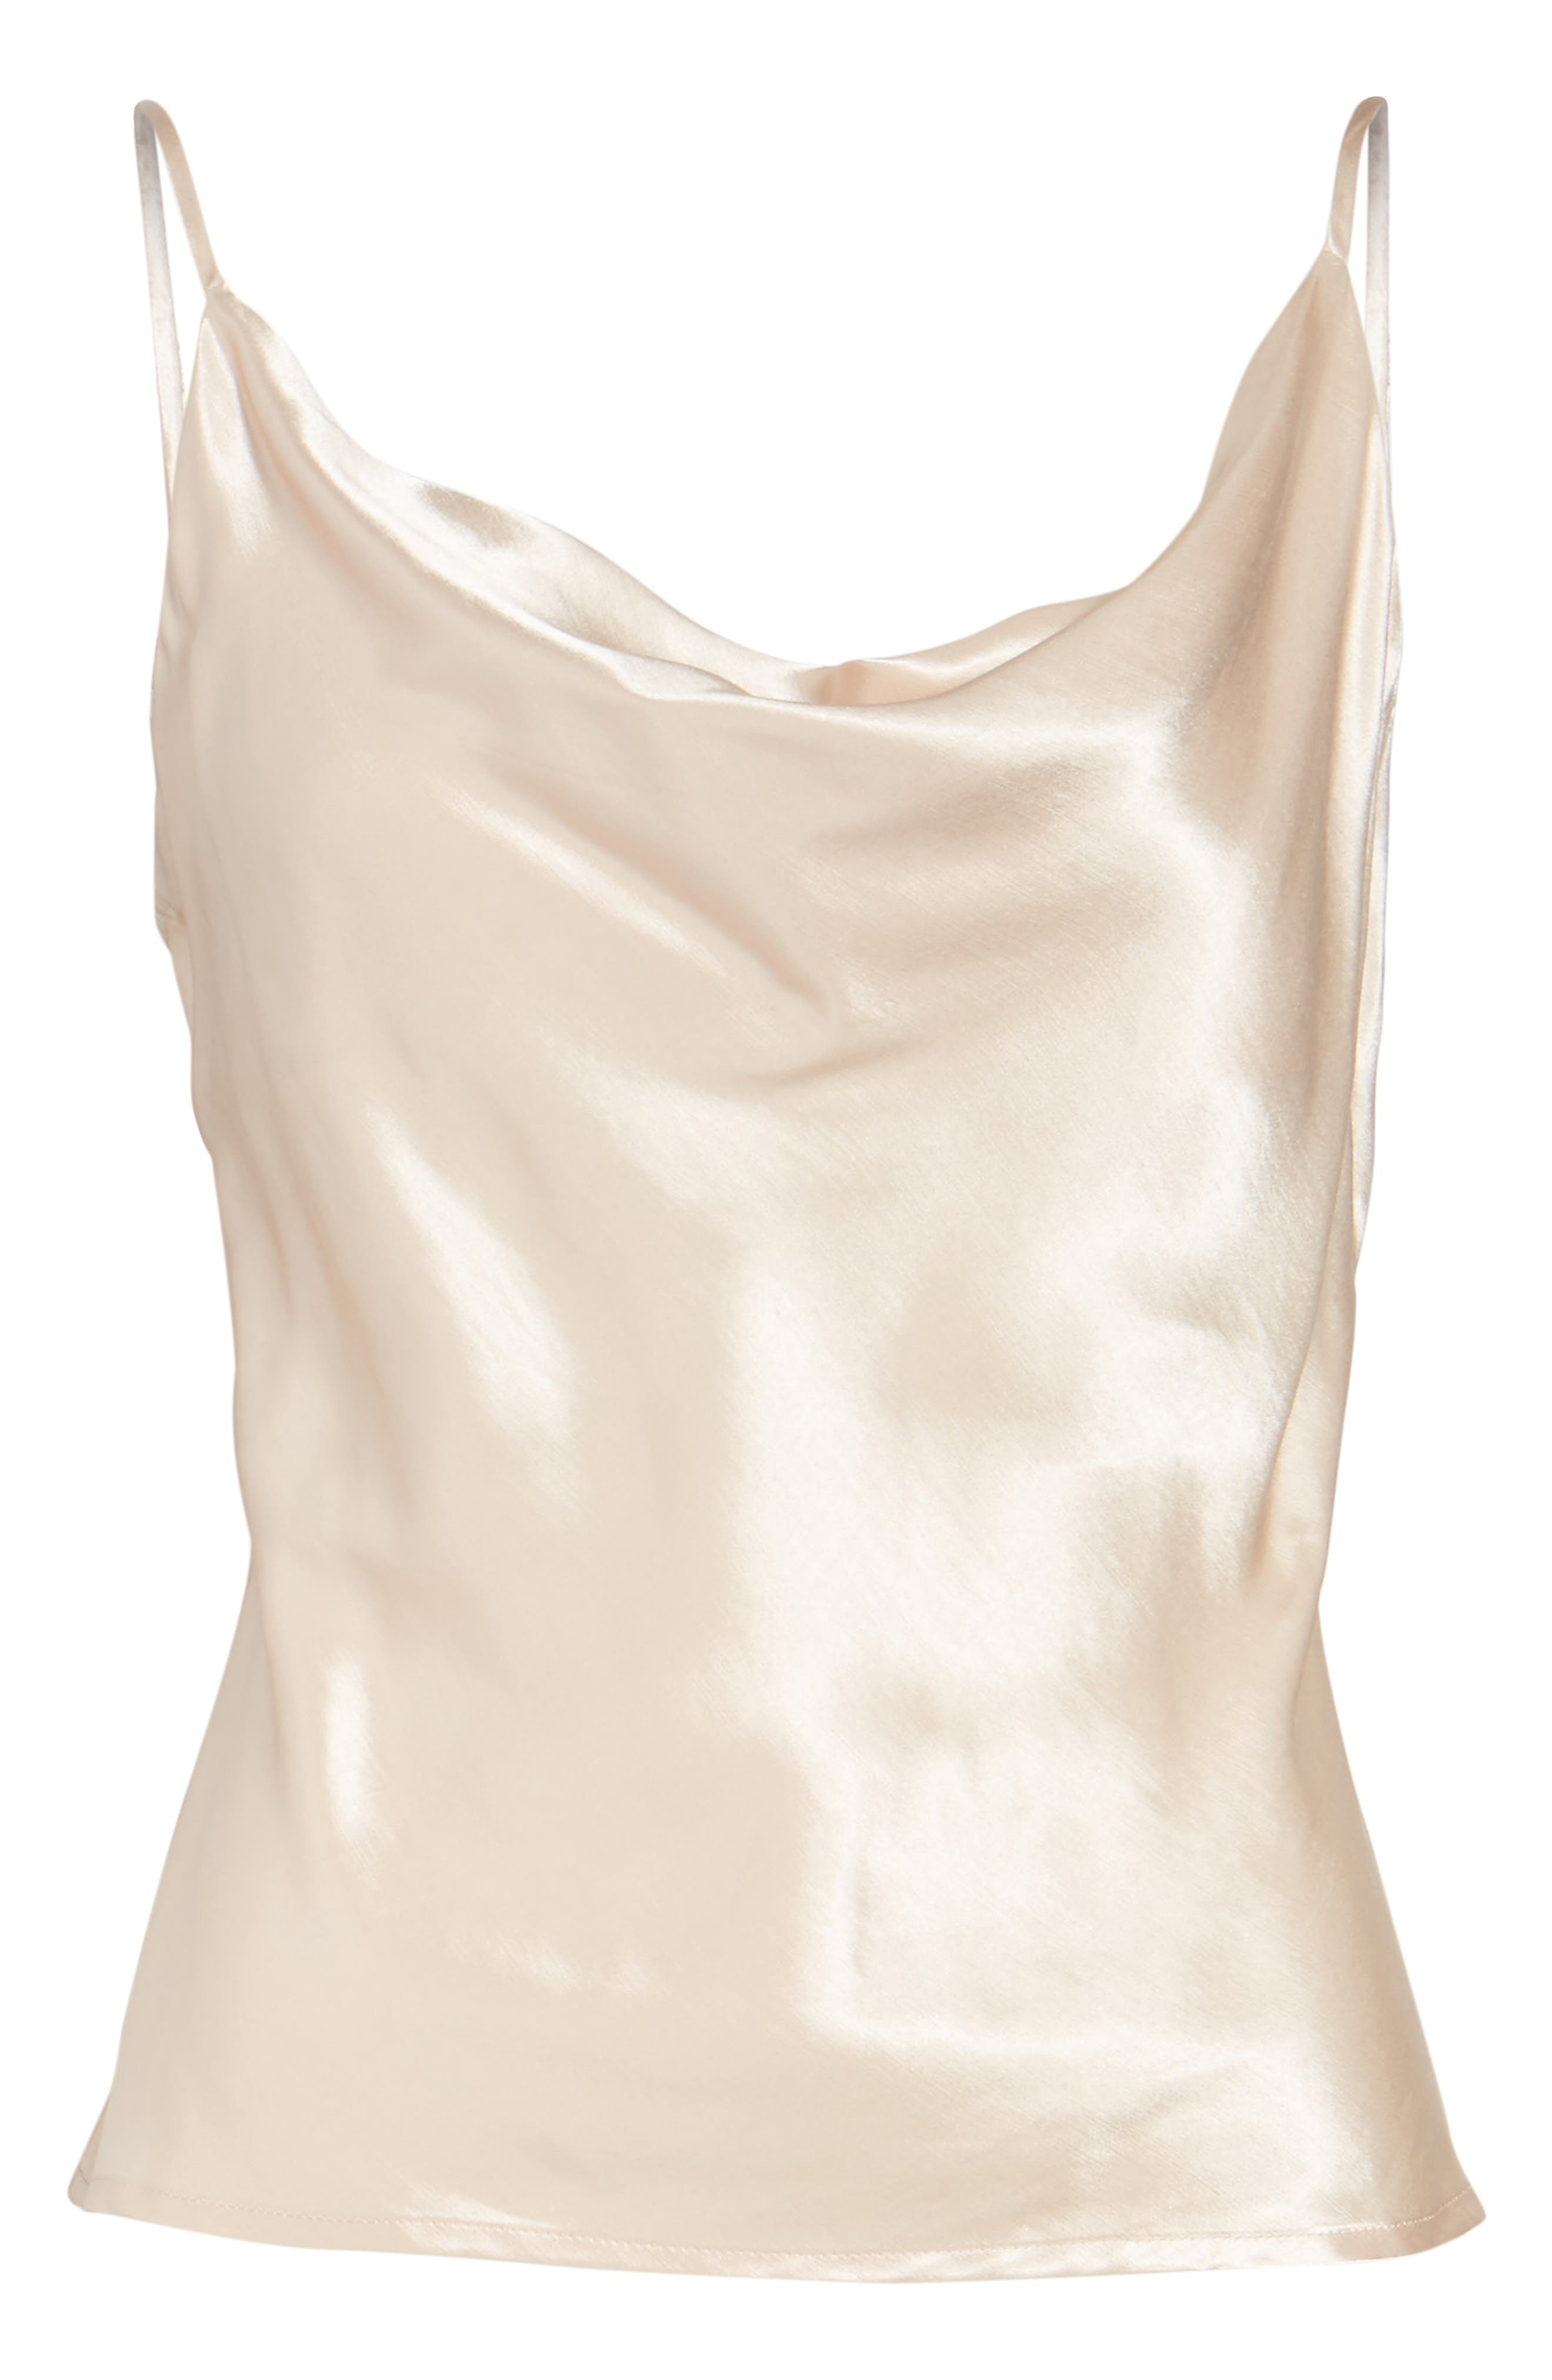 L'Academie The Cowl Camisole,                             Alternate thumbnail 6, color,                             Champagne